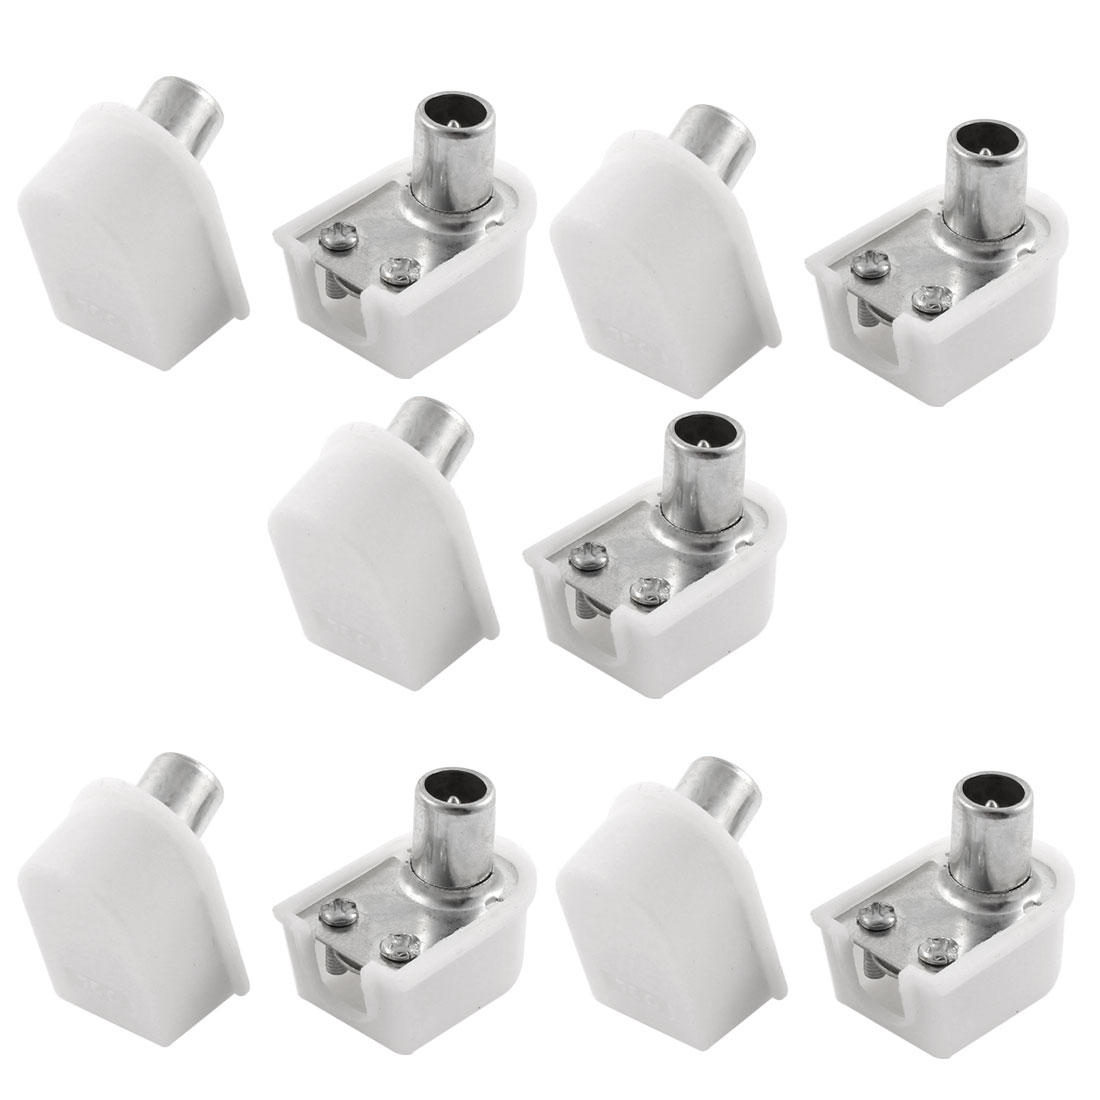 Screw Type RF Male CATV TV FM Antenna Jack Coax Connector Adapter 10 Pcs